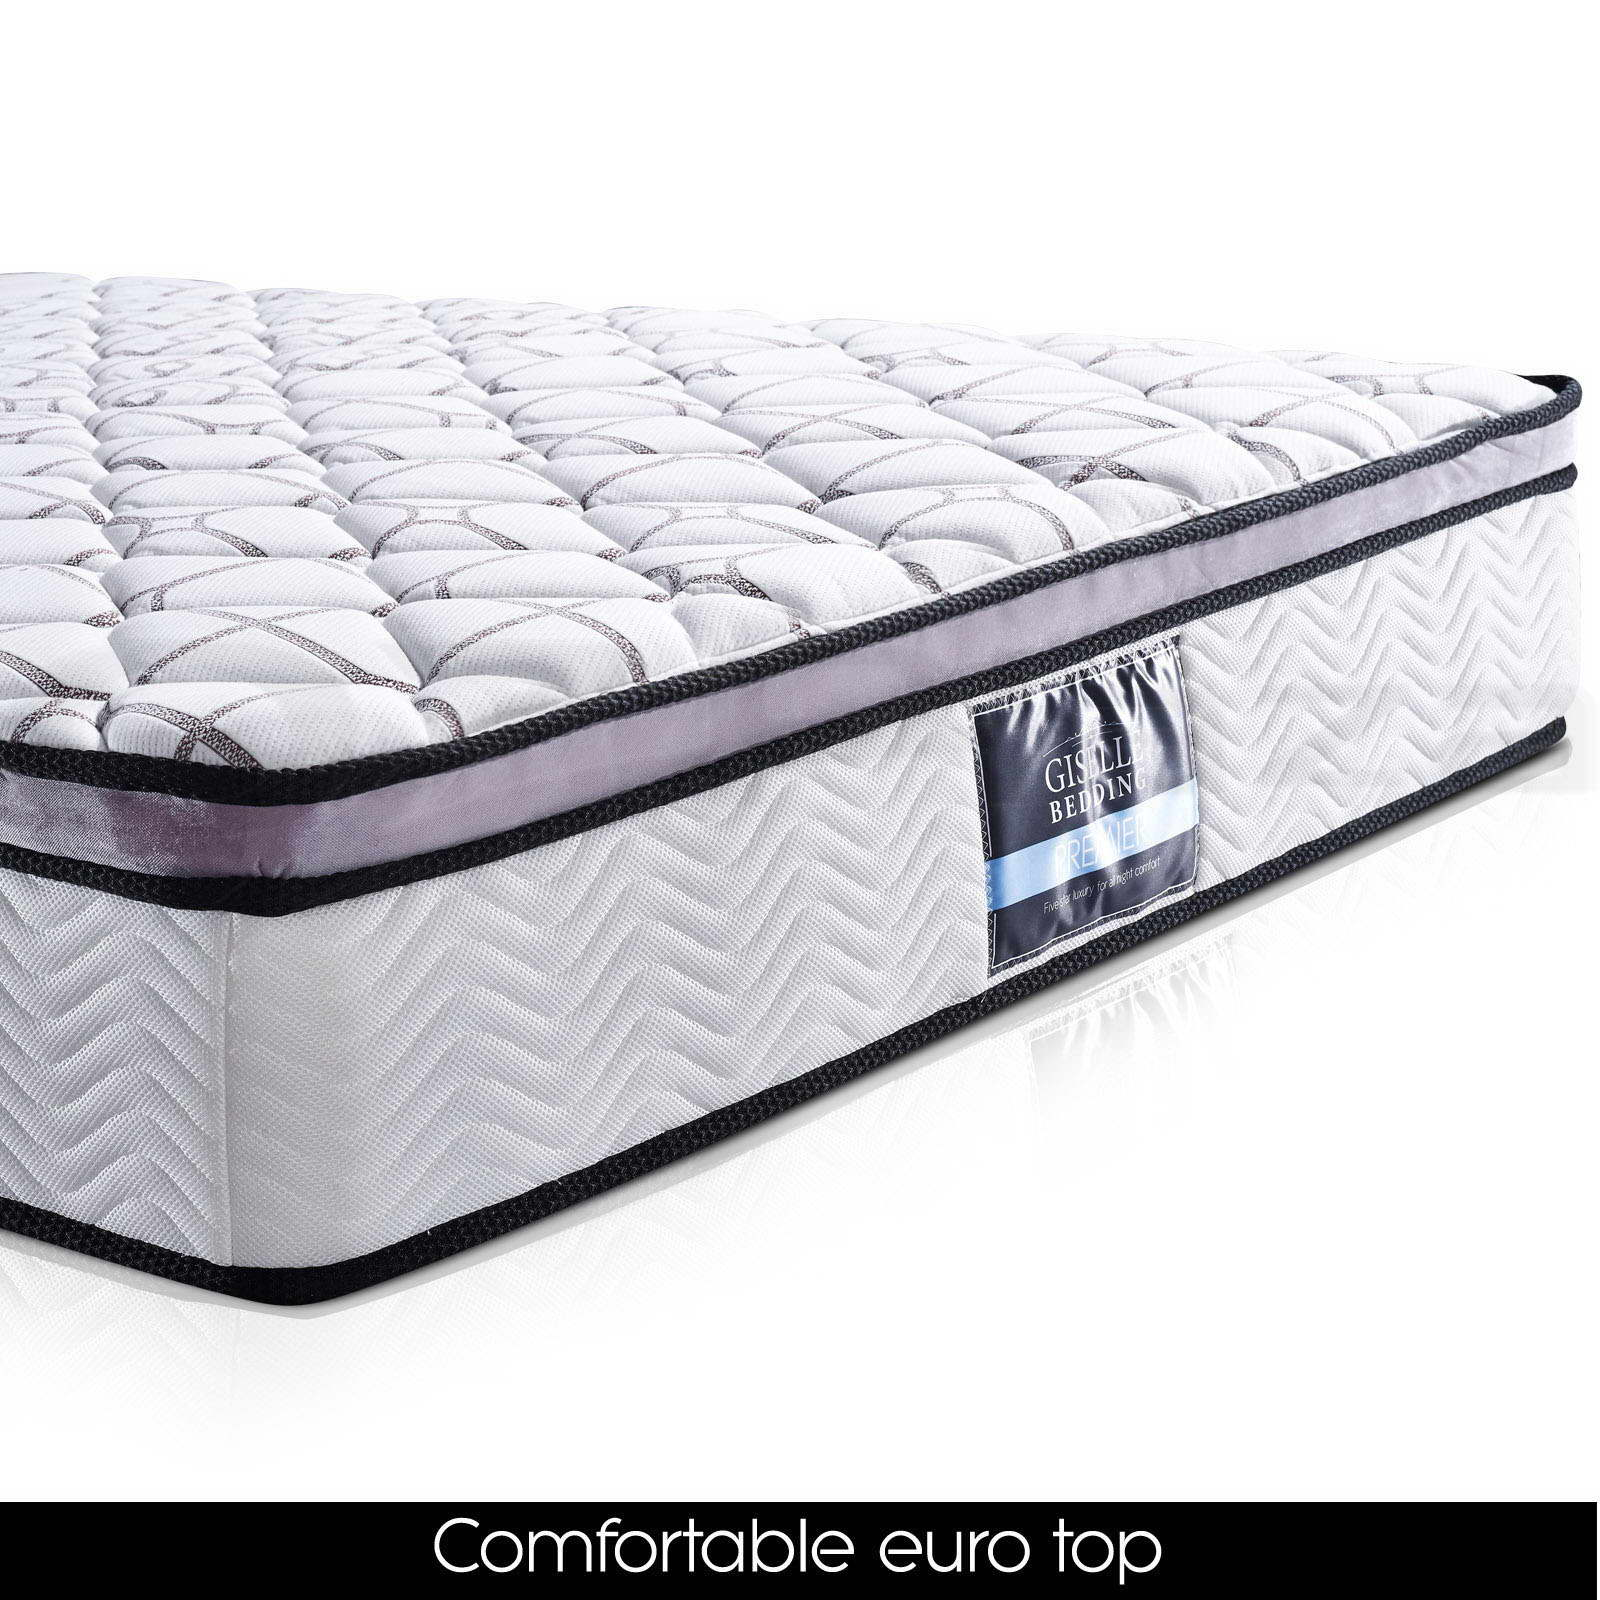 Queen double king single mattress 10 model euro pillow for Dual pillow top mattress